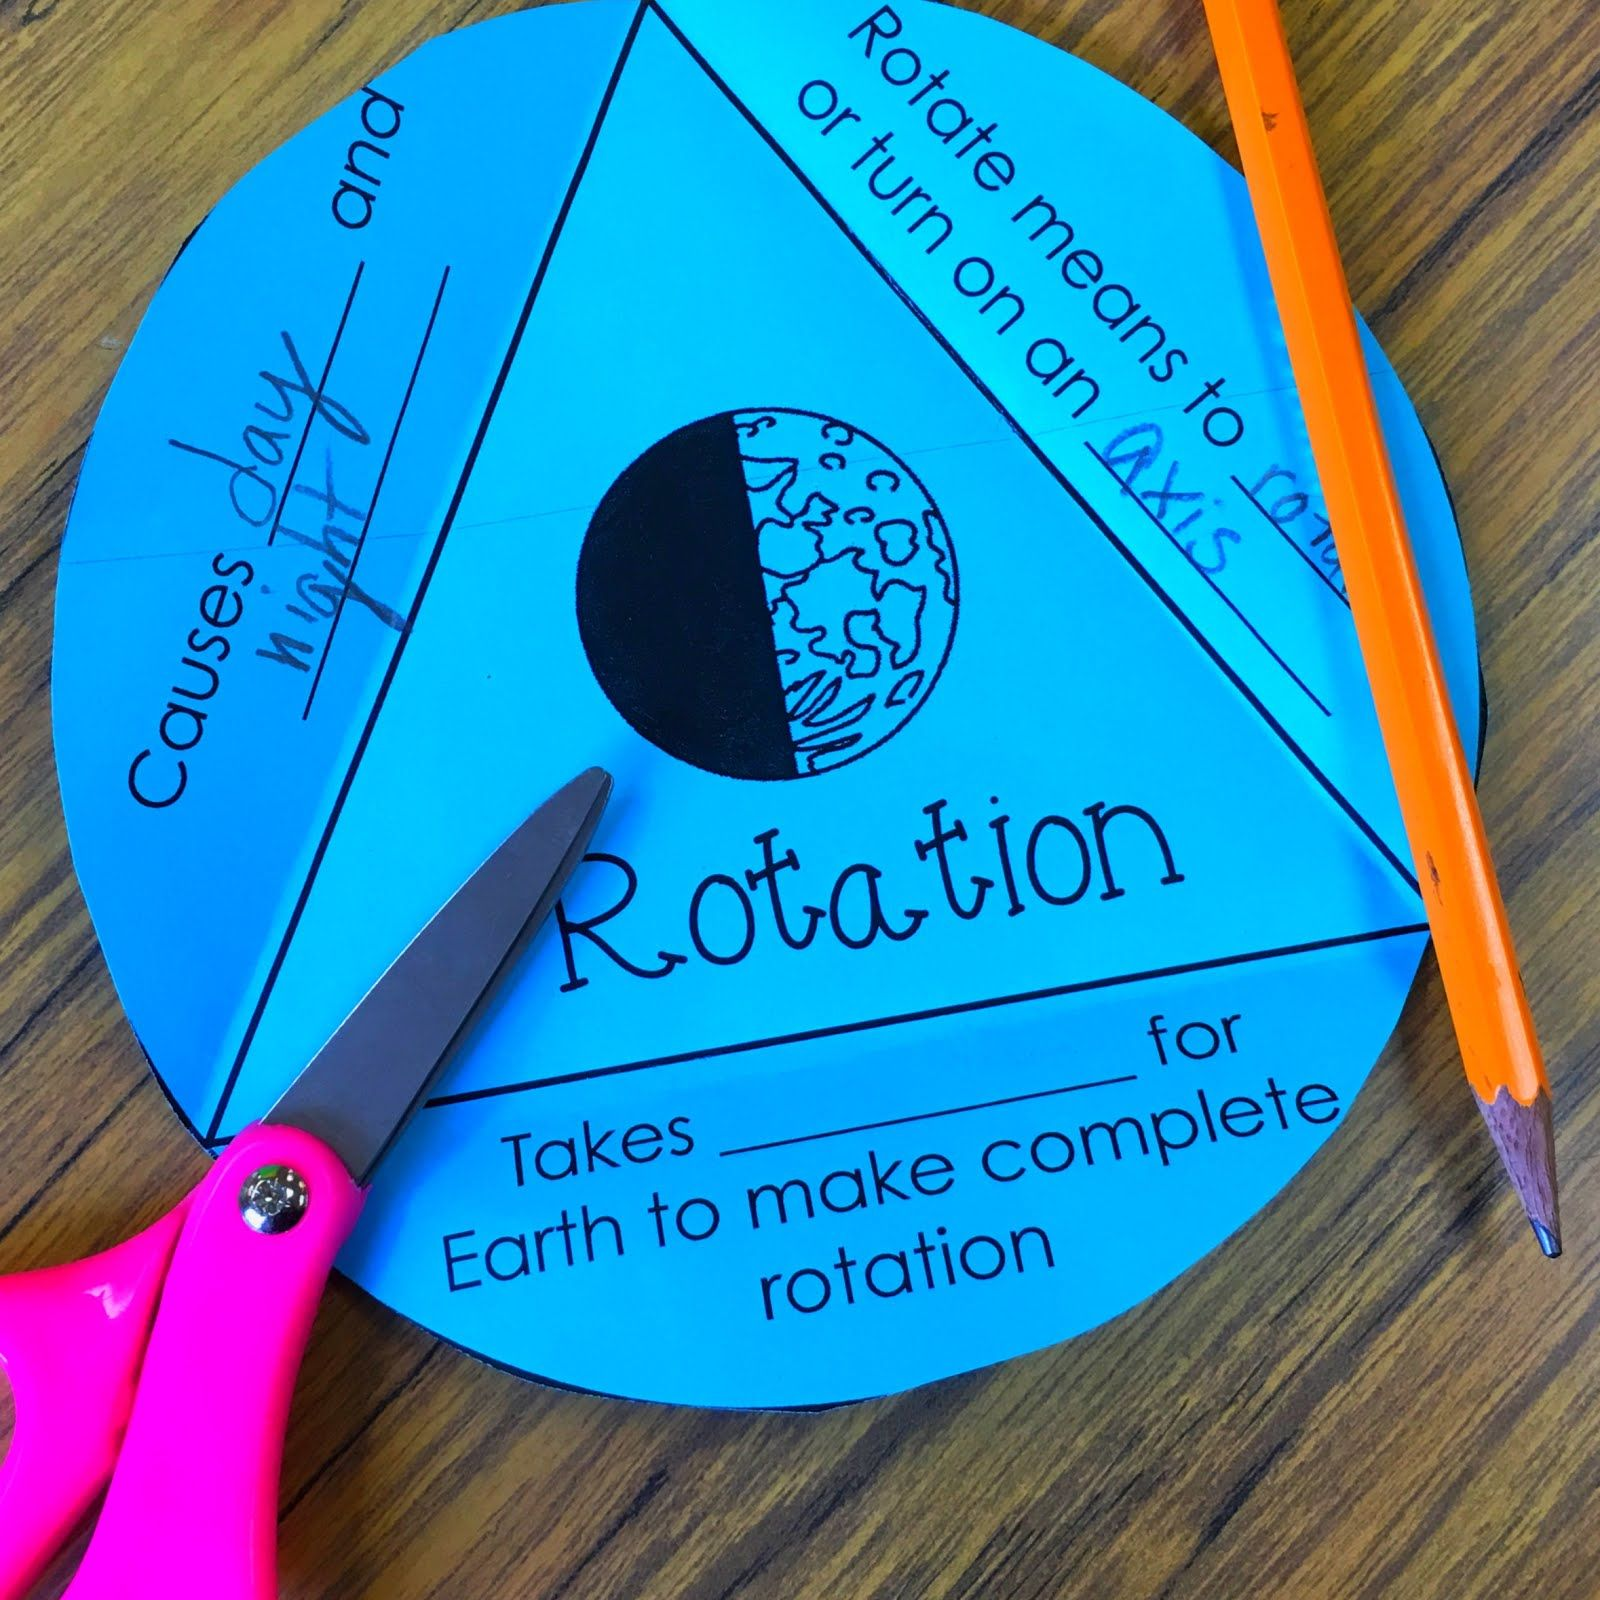 Rotation Amp Revolution Activities Amp Lessons In The